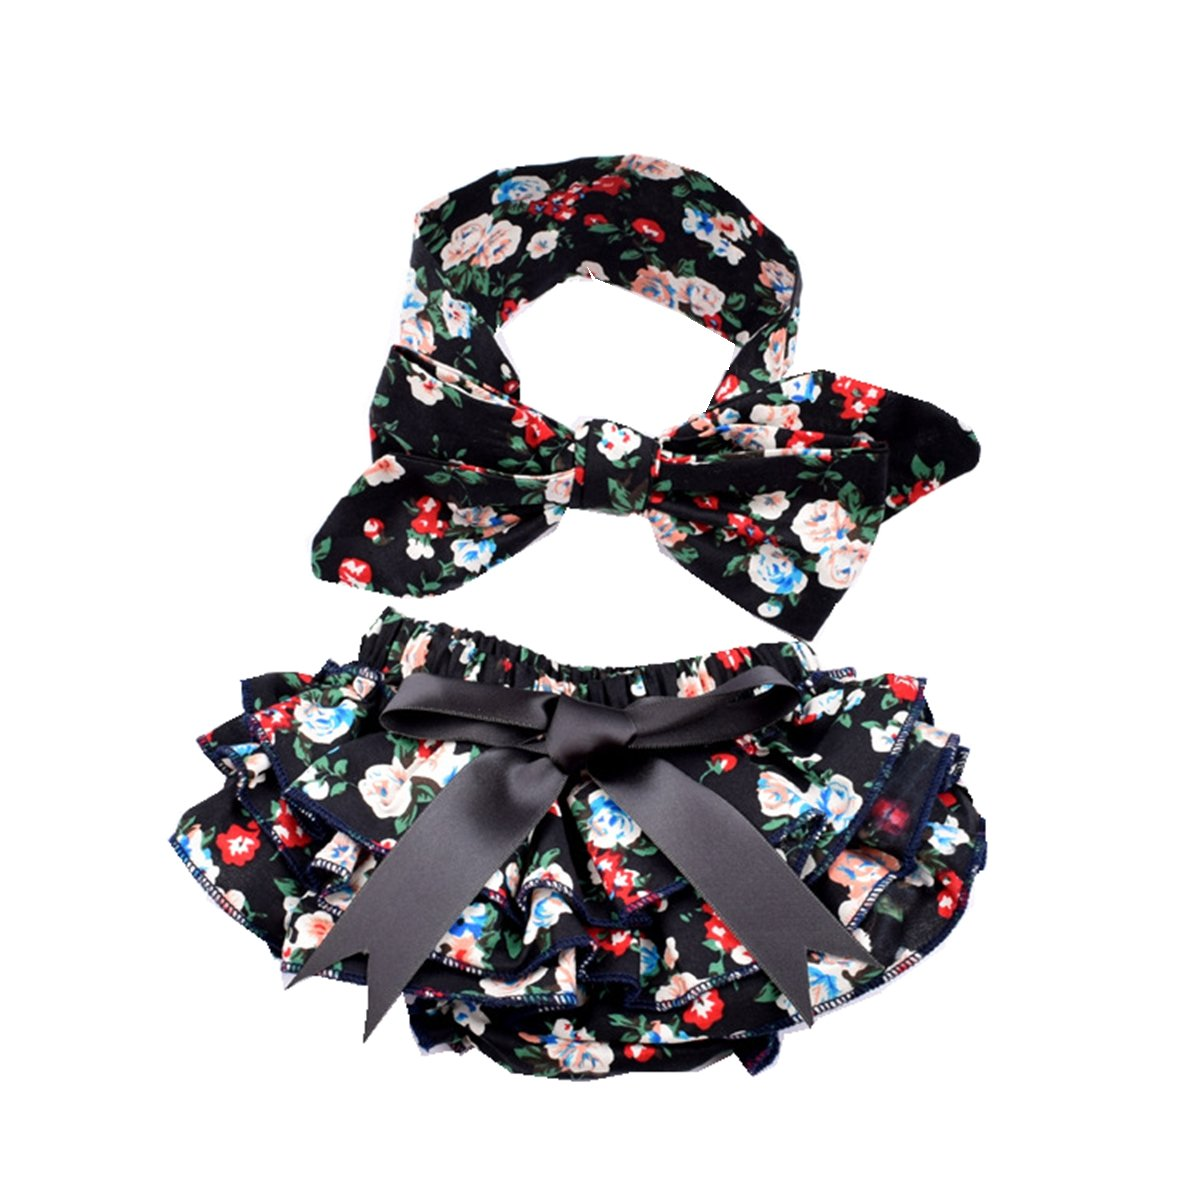 Baby Girls Diaper Cover Outfit Floral Soft Newborn Bloomer and Headband Set Czofnjes